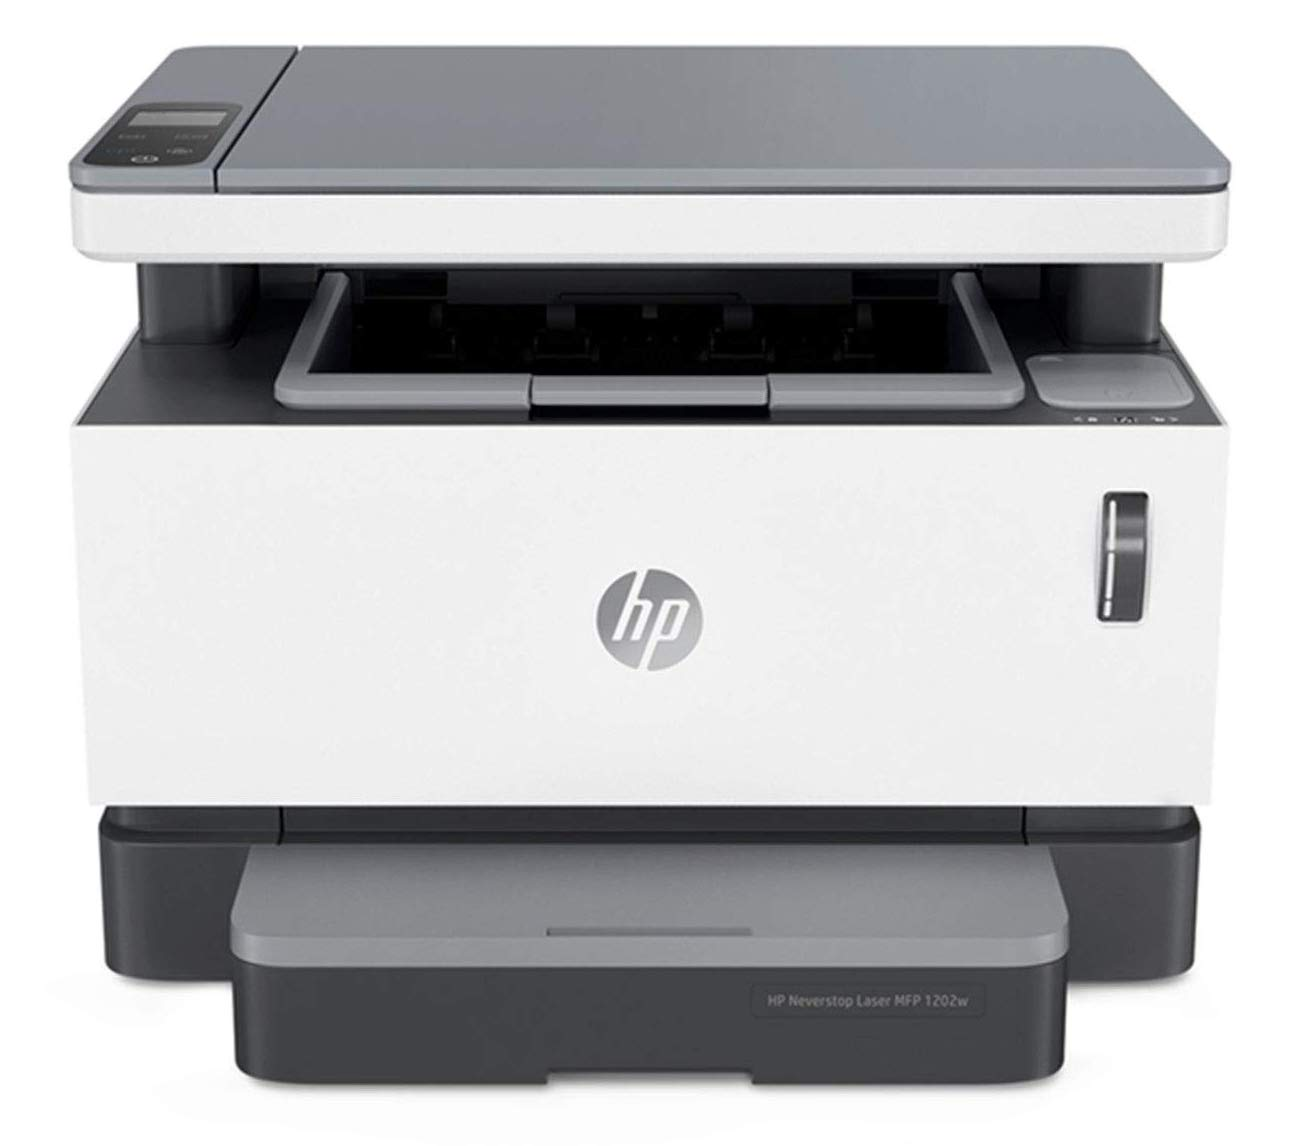 HP Neverstop All-in-One Laser Printer 1202w | Wireless Laser with Cartridge-Free Monochrome Toner Tank (5HG82A) (5HG92A#BGJ), White, Standard